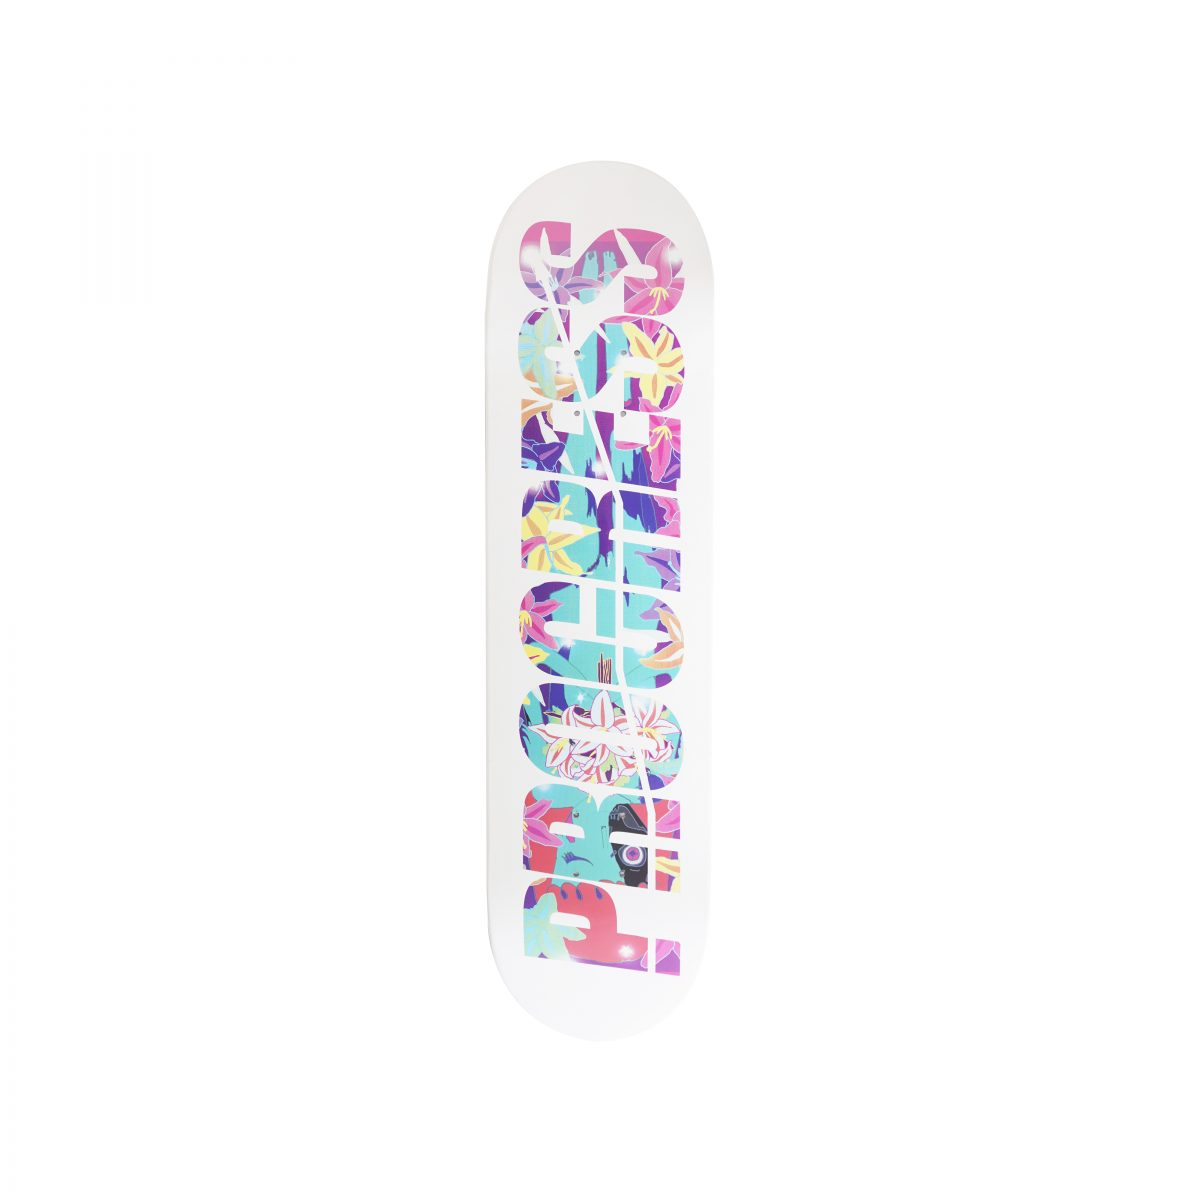 YEOKAA FOR PROGRESS® SKATE DECK